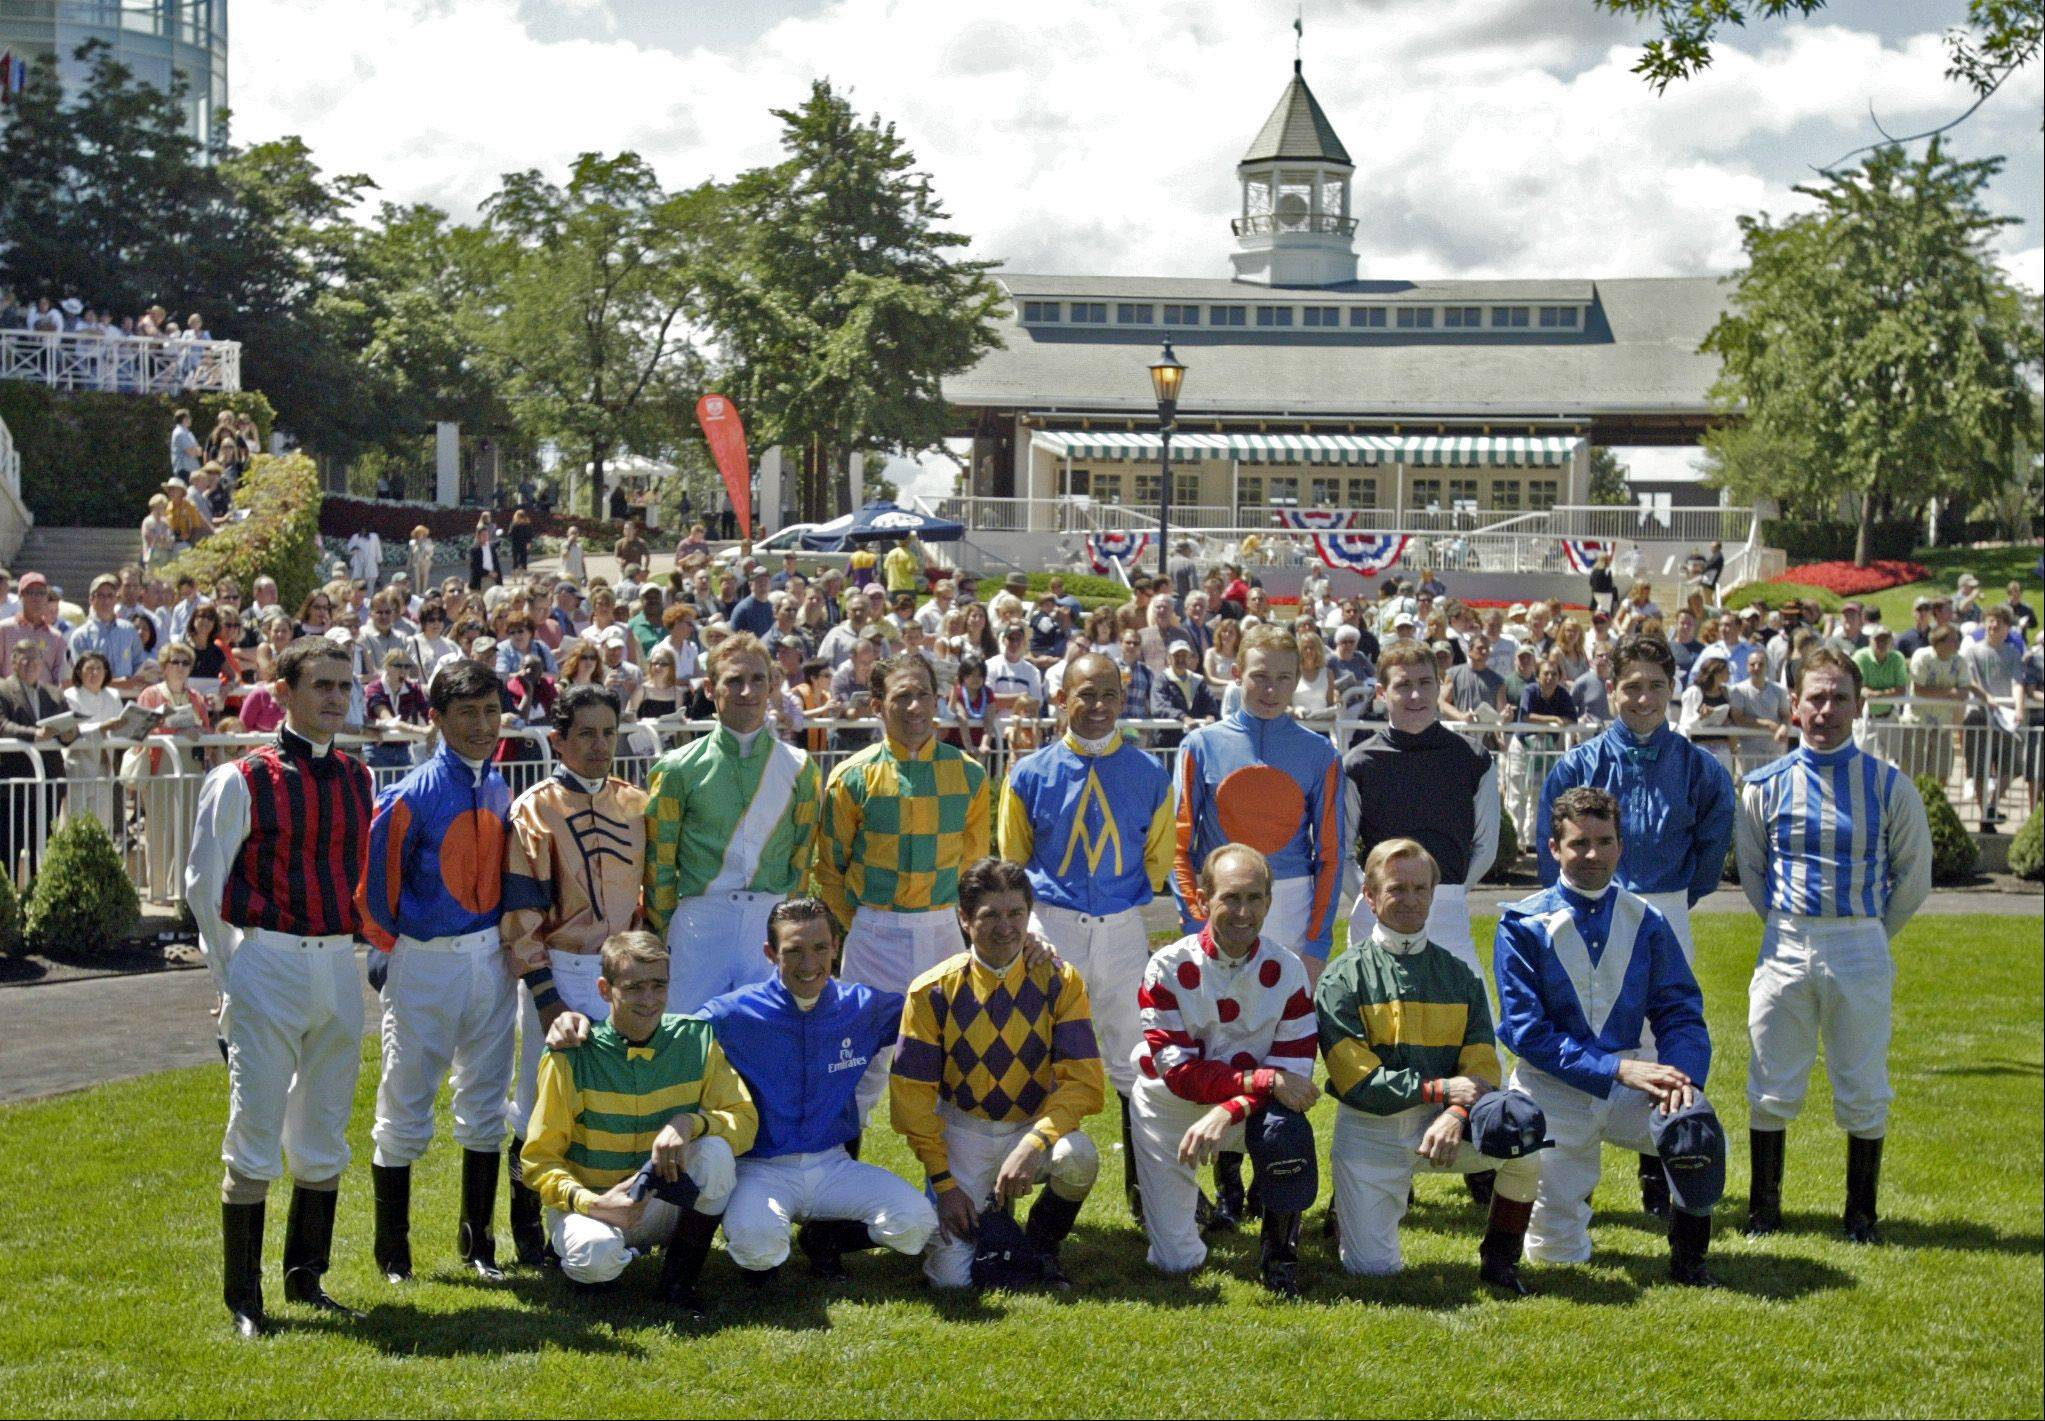 Arlington Festival of racing jockeys pose for a photo after opening ceremonies during the 22nd annual running of the Arlington Million.